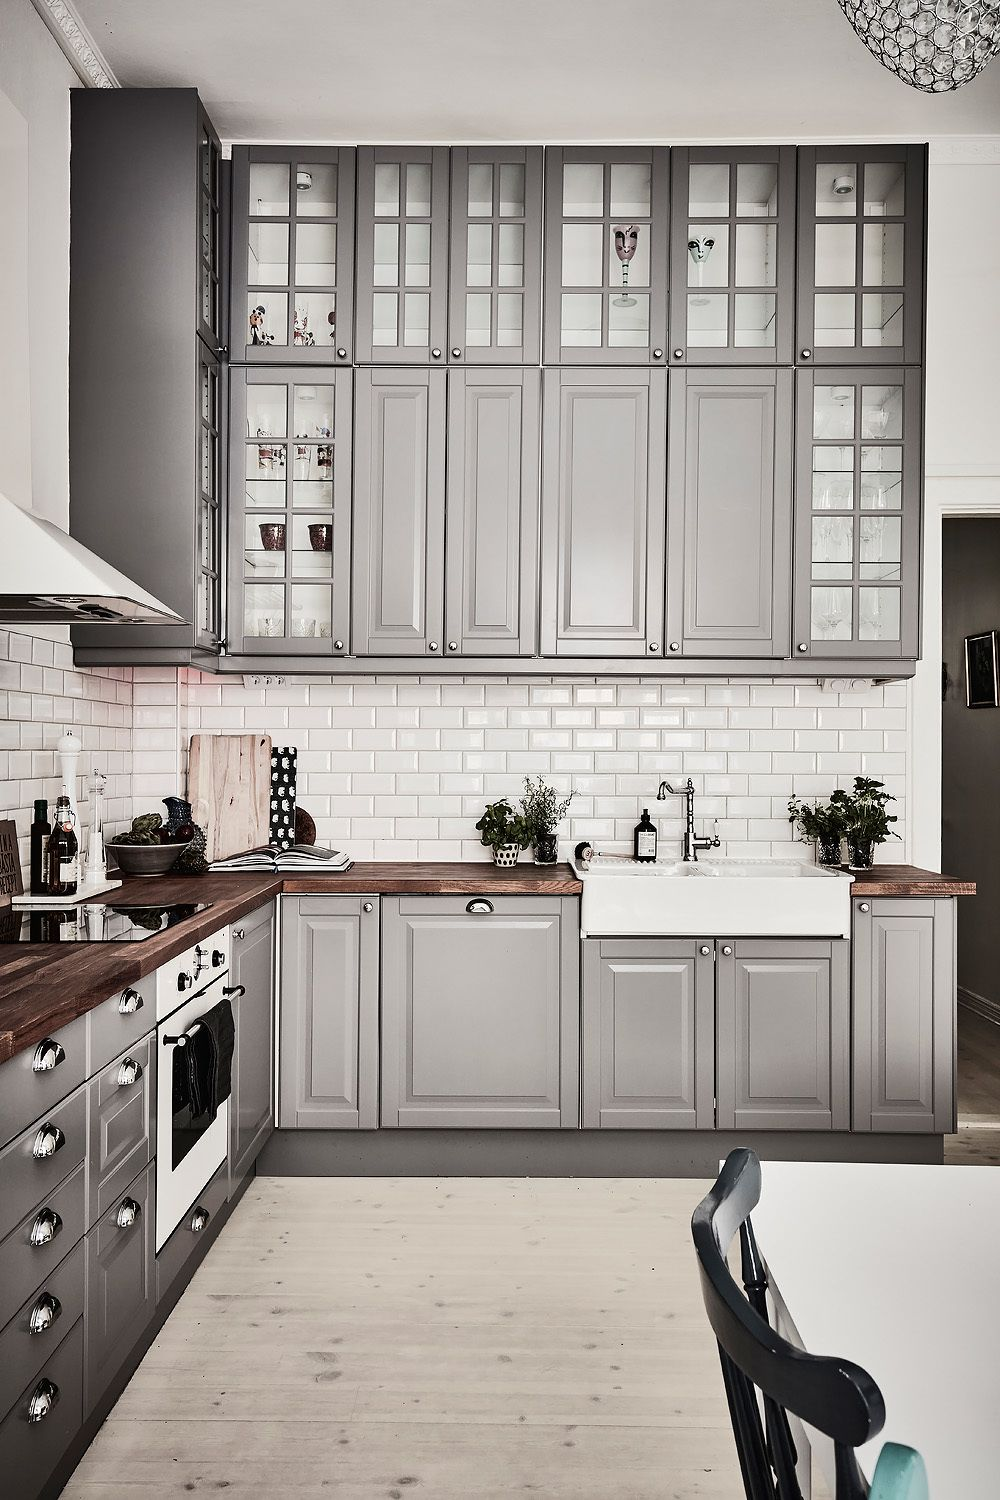 Merveilleux Inspiring Kitchens You Wonu0027t Believe Are IKEA